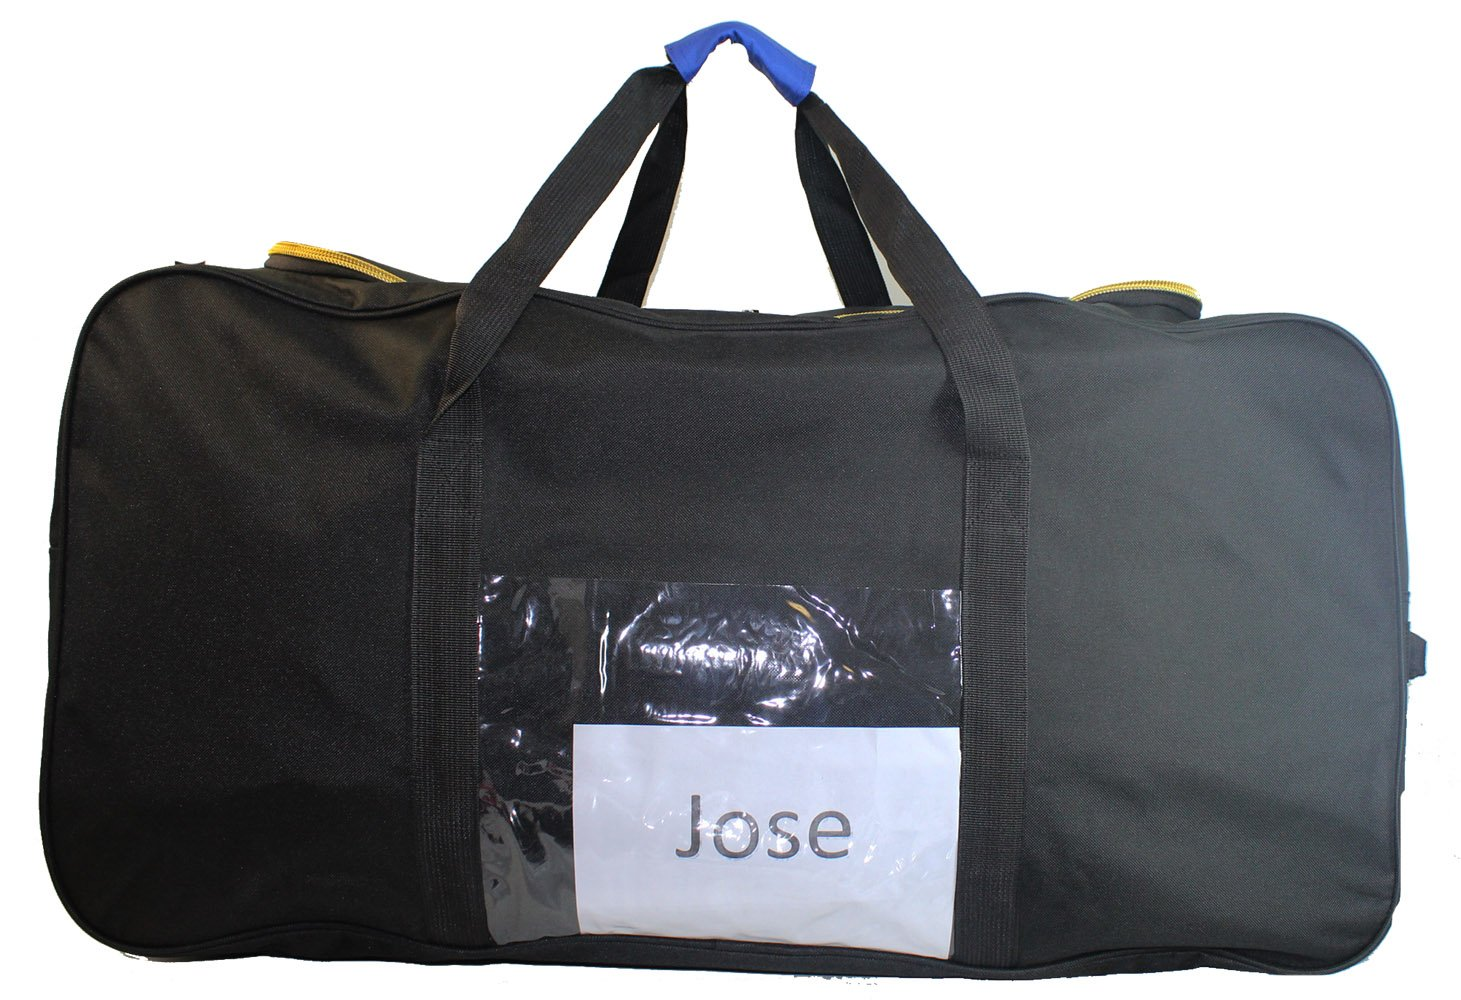 Jose's Eco Cuban-Traveler Check-In 50lb 62'' Duffel Bag + ID lock (Black)